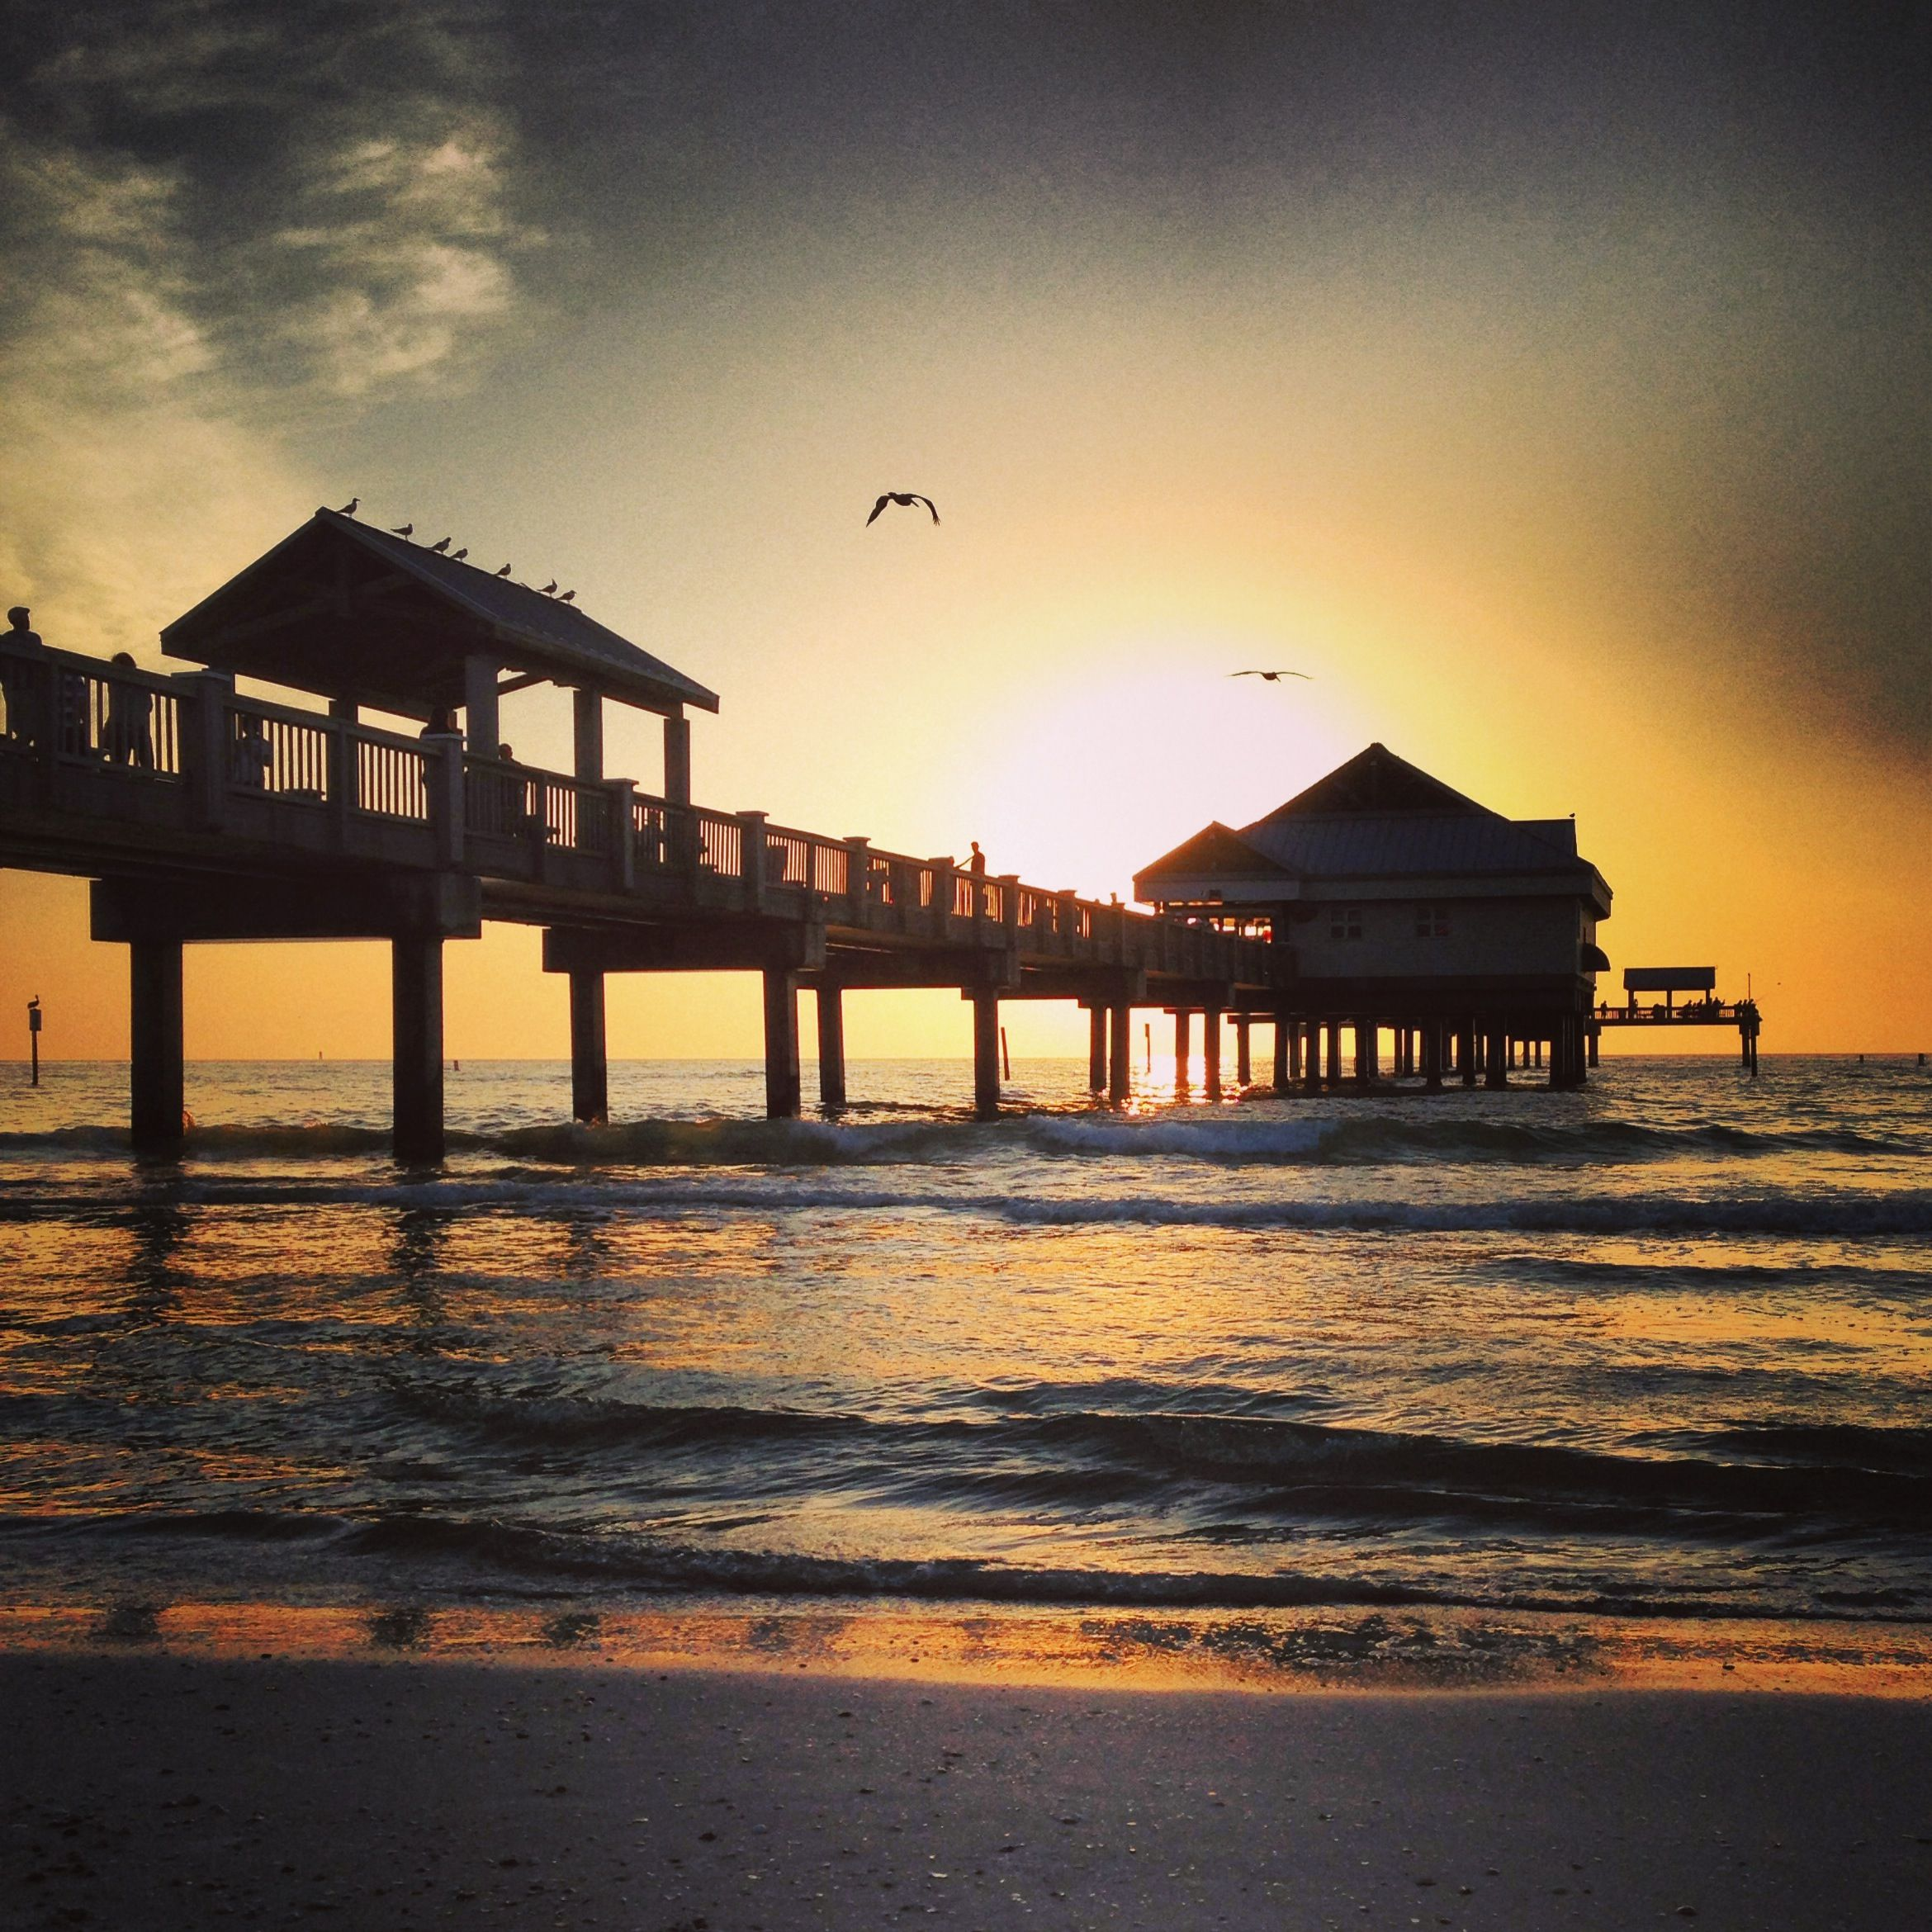 Tampa Bay Vacation Condo: Best 25+ Clearwater Beach Florida Ideas On Pinterest